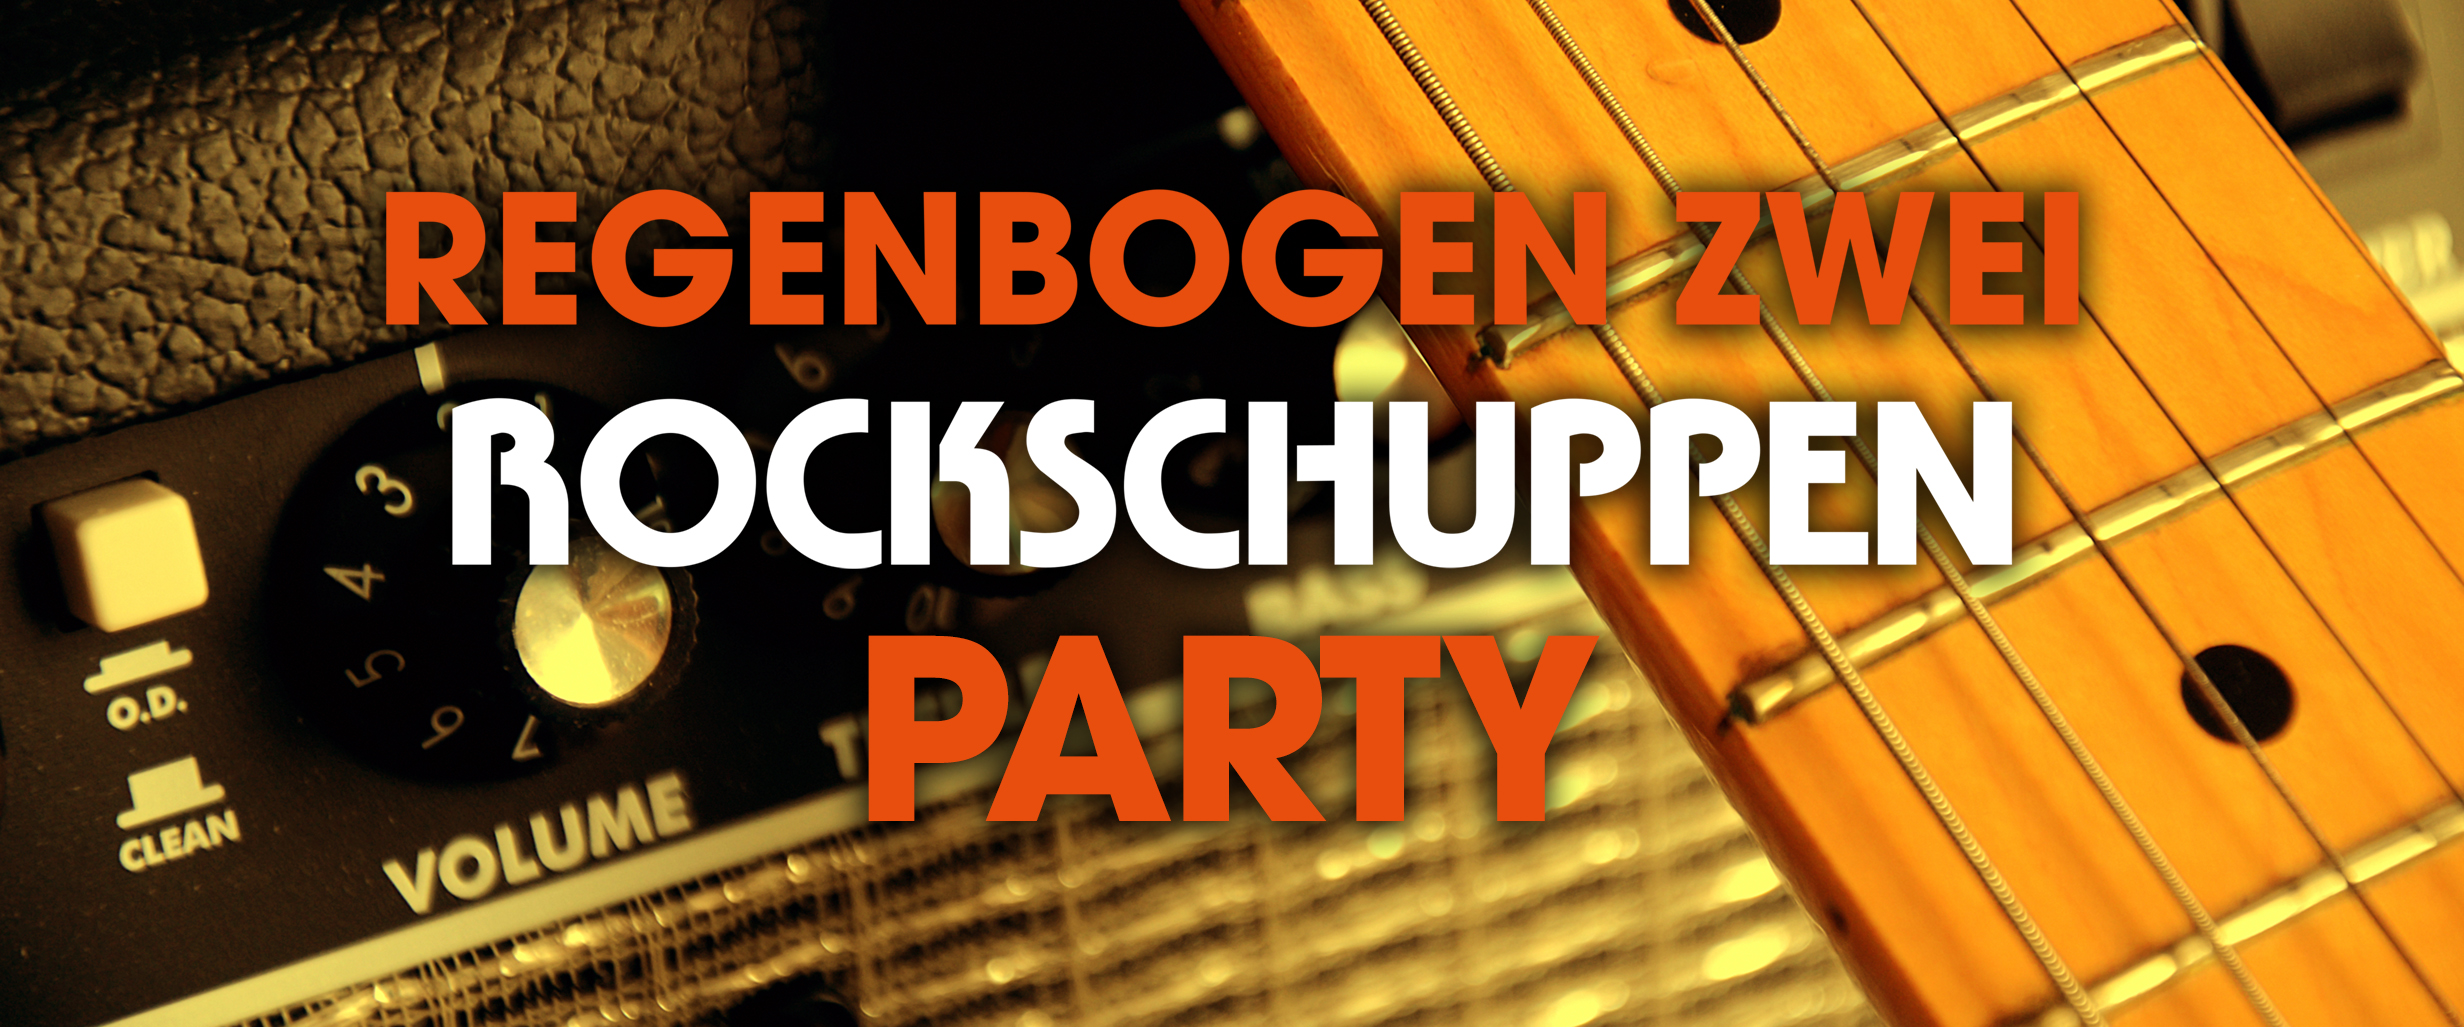 Rockschuppen-Party-Titel.jpg